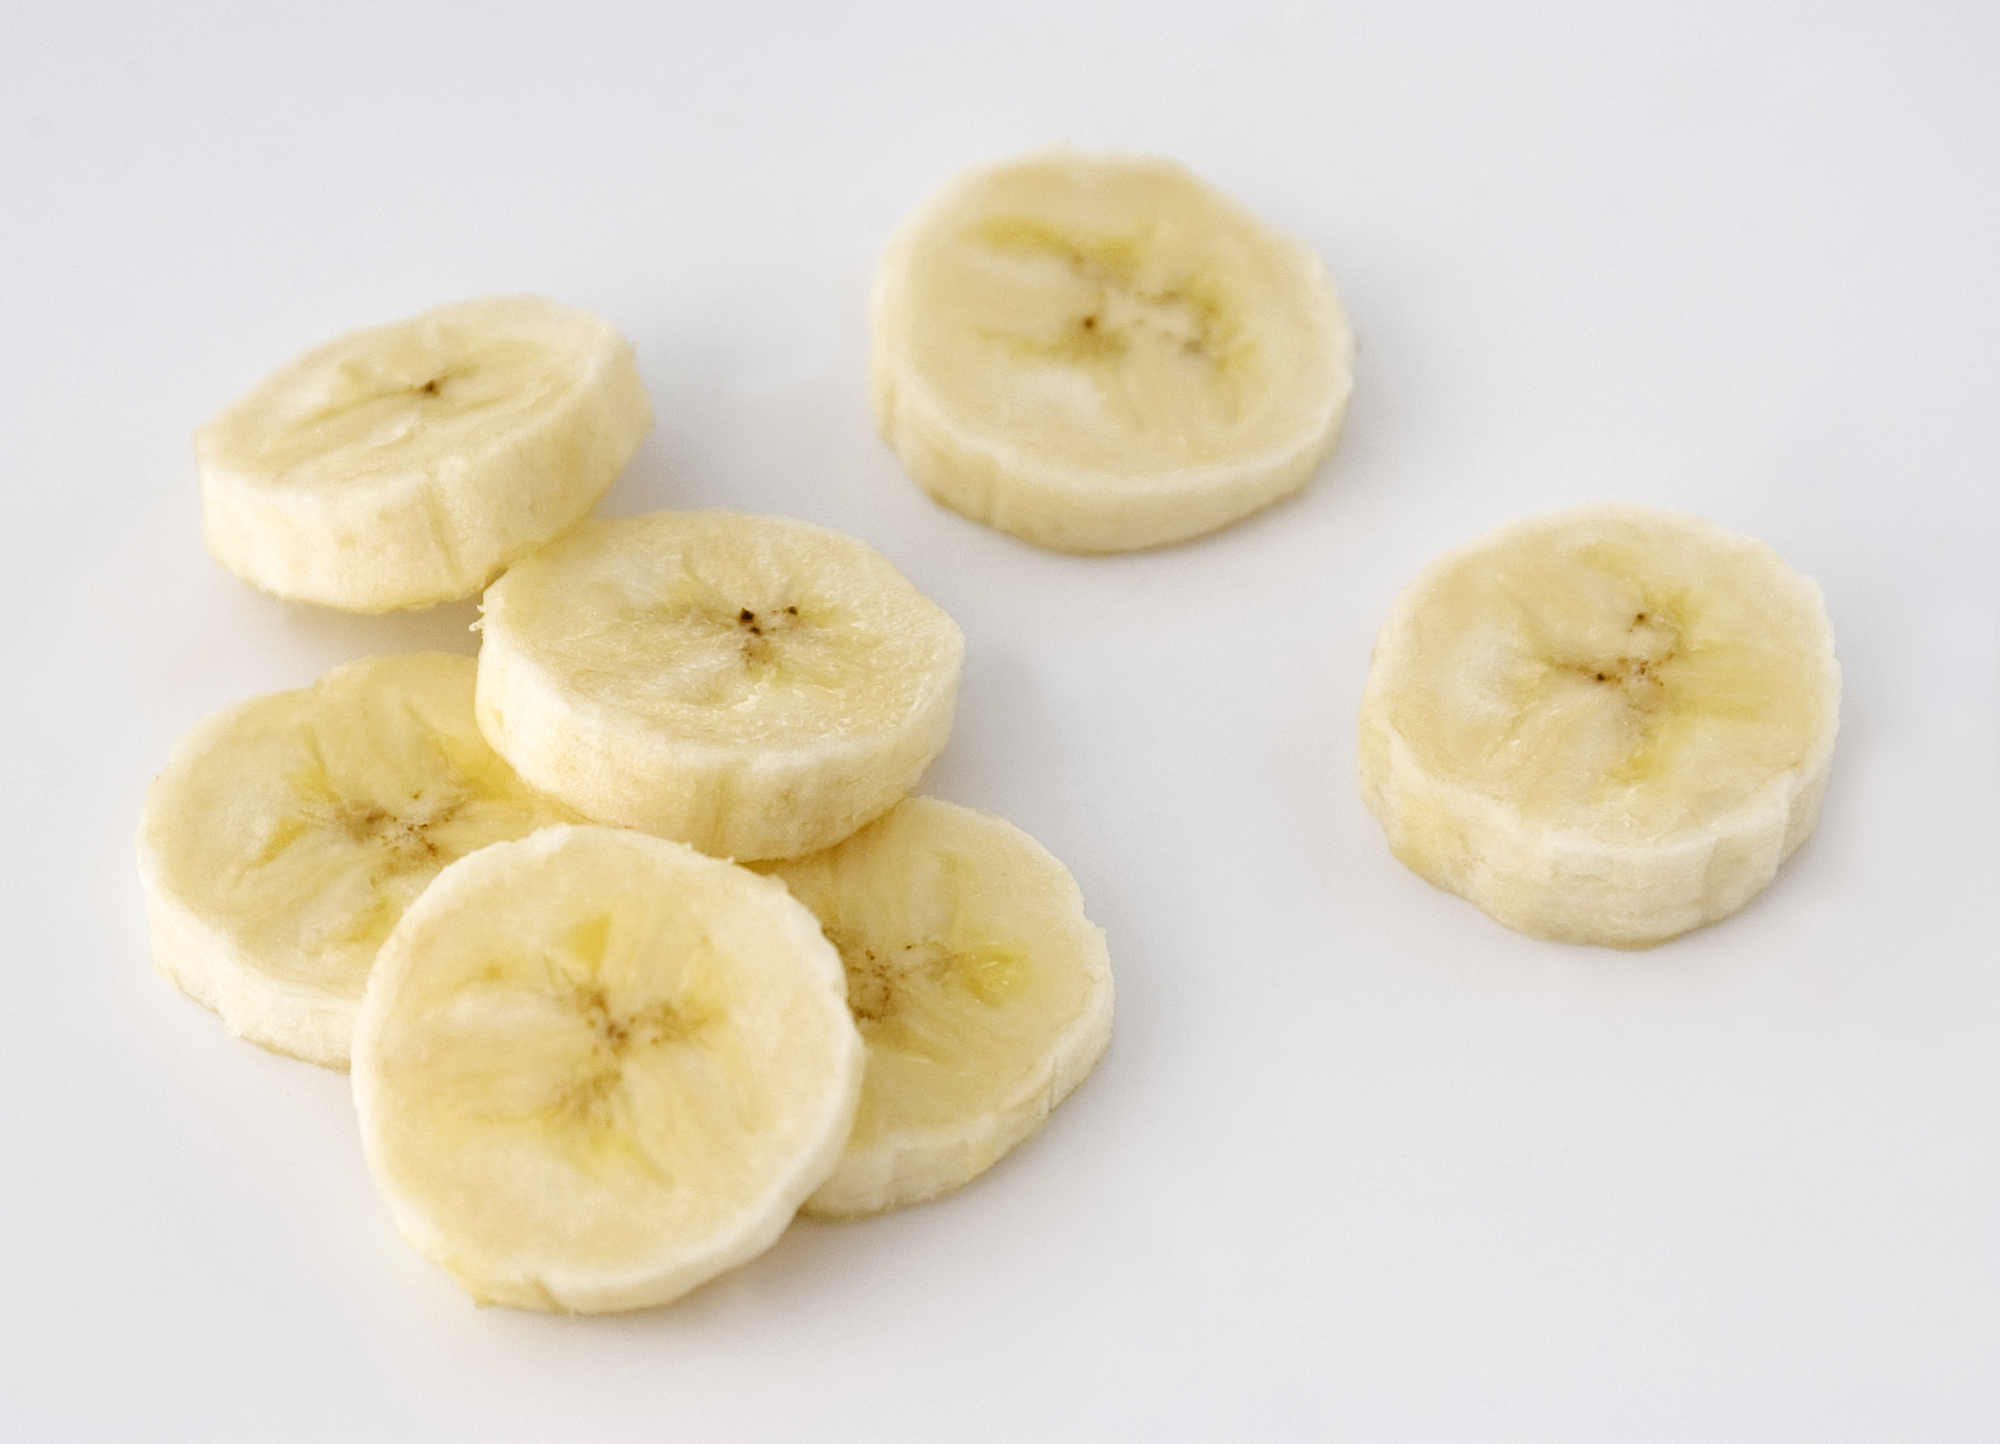 Sliced bananas.